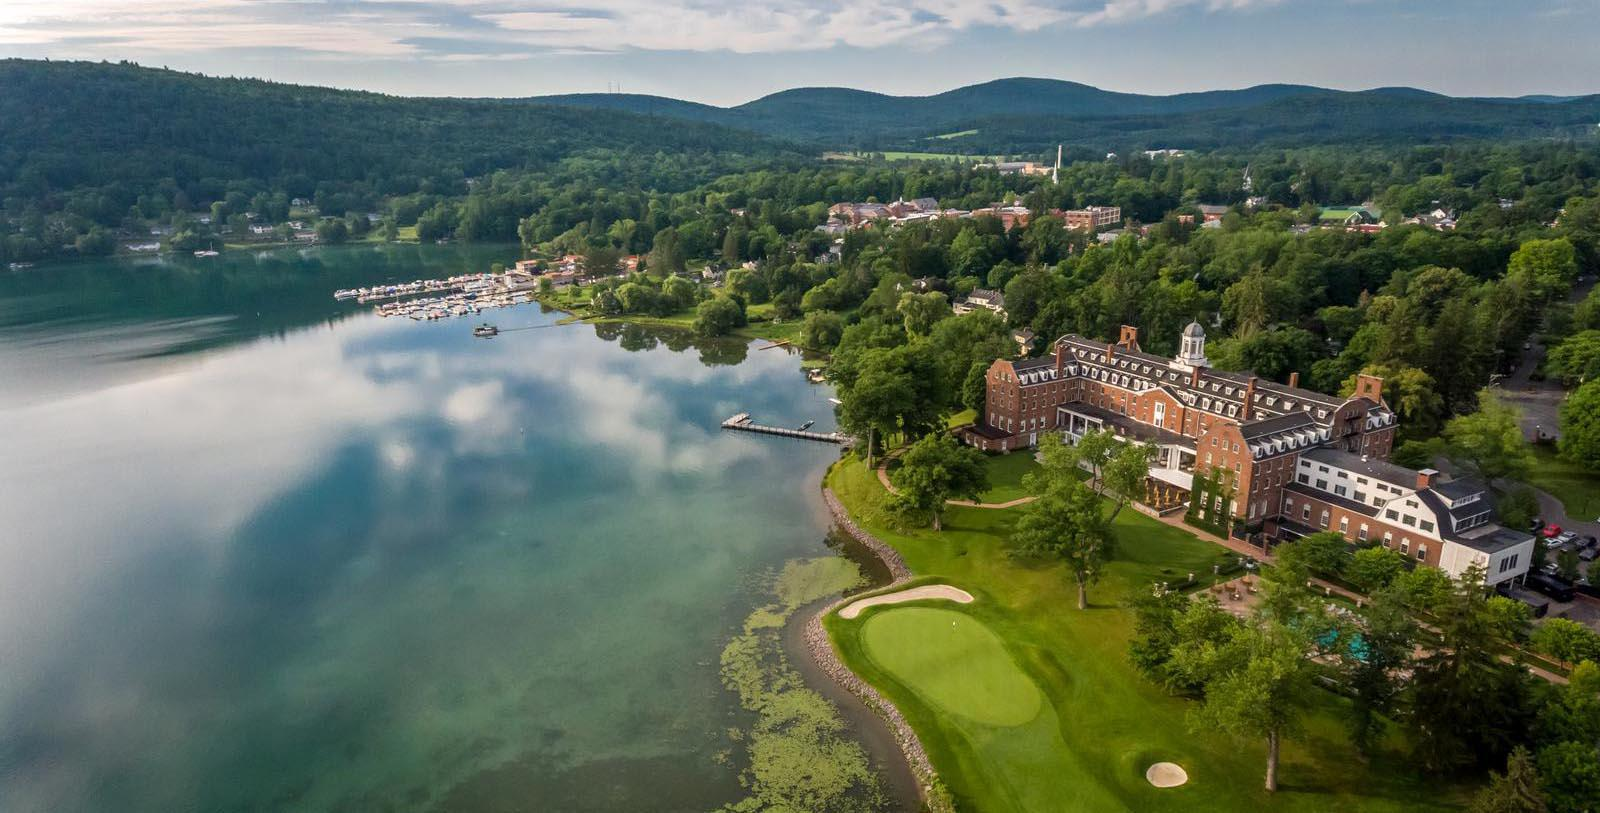 The Otesaga Hotel